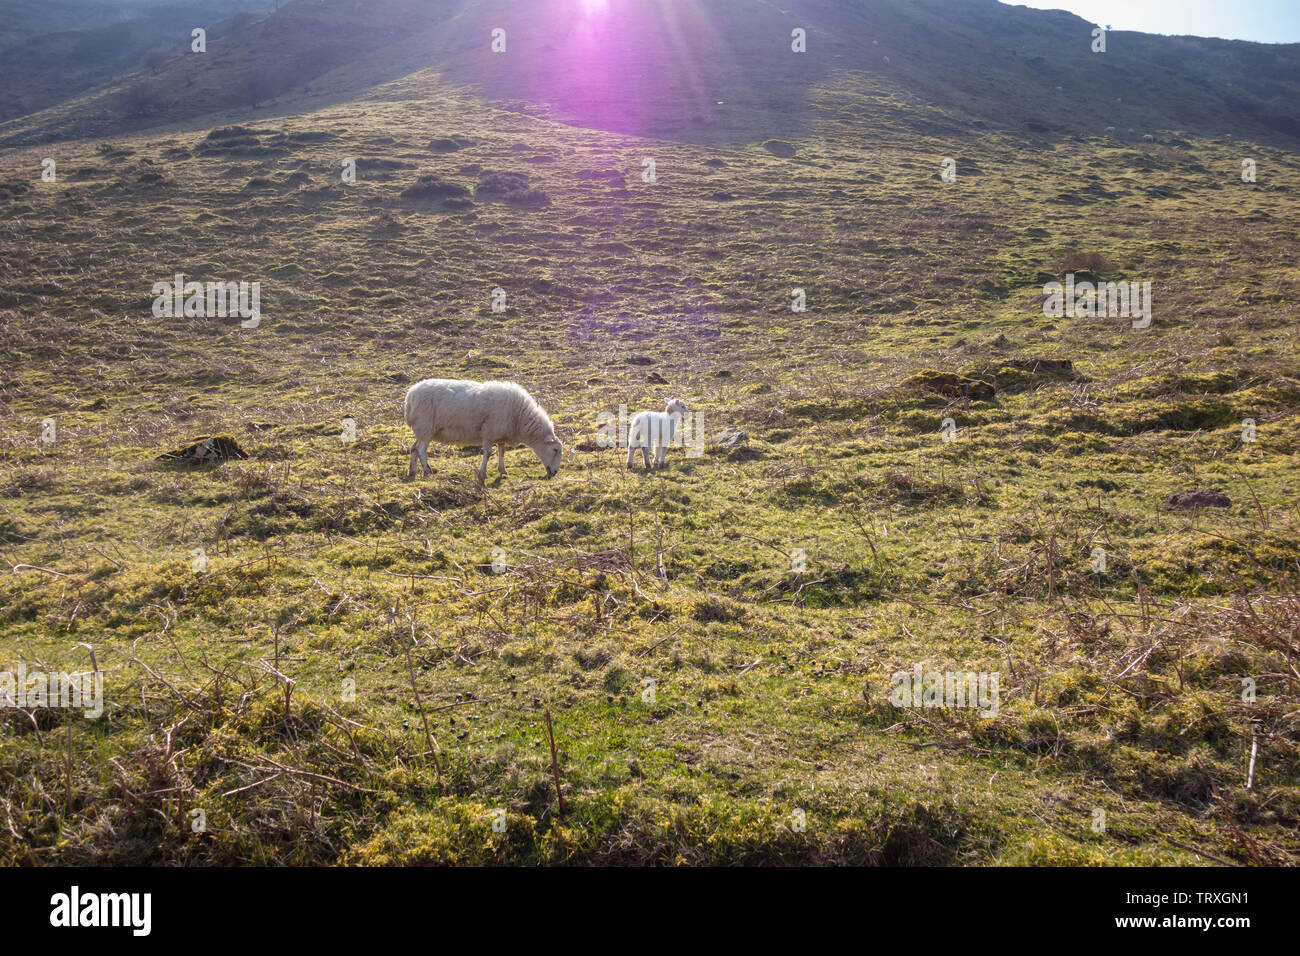 Brecknock Hill Cheviot, ewe with lamb. Brecknockshire Wales, March 2019 - Stock Image